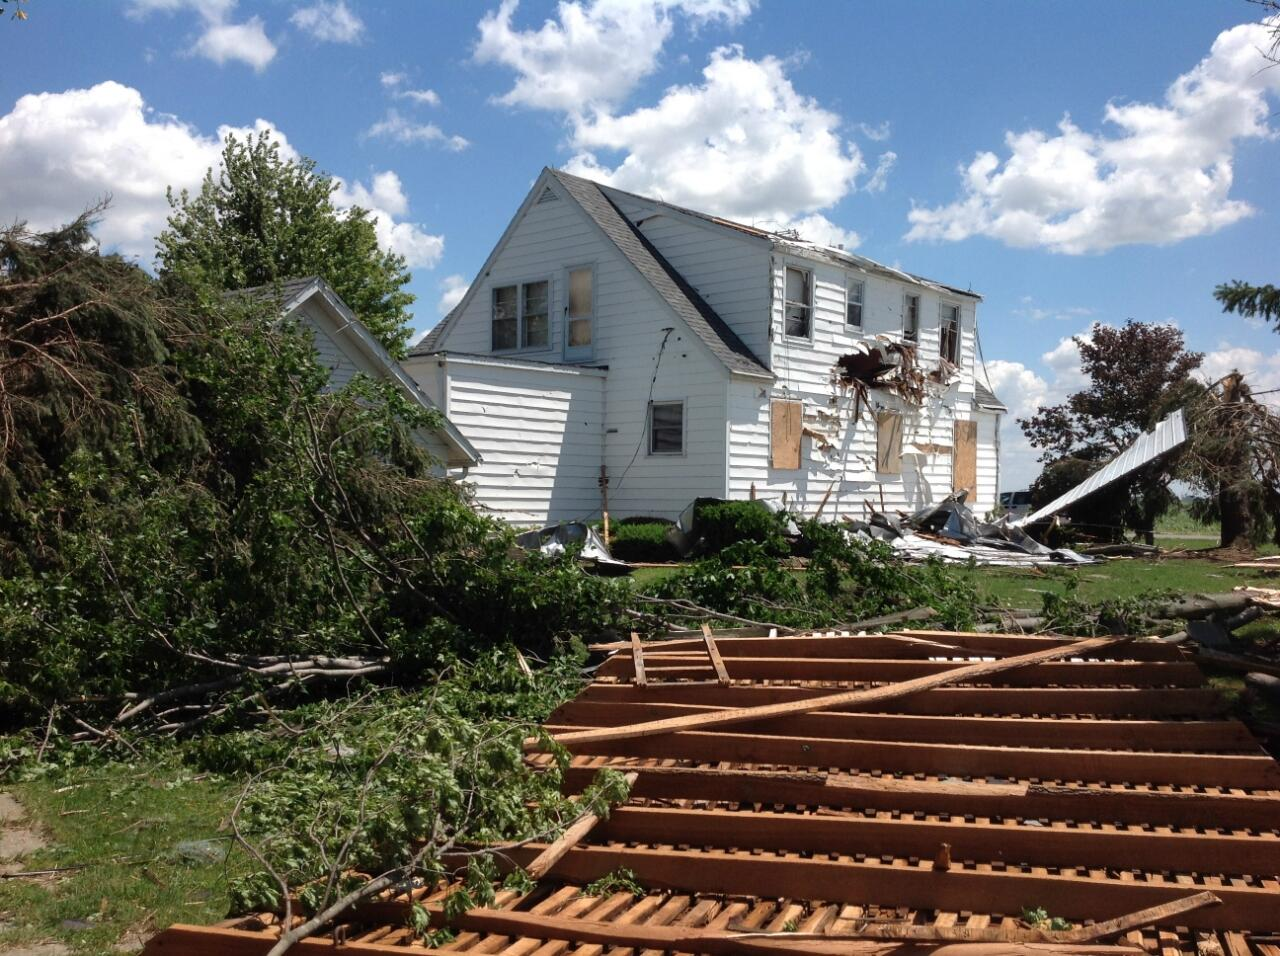 NWS photo of tornado damage in Henry County, Ohio